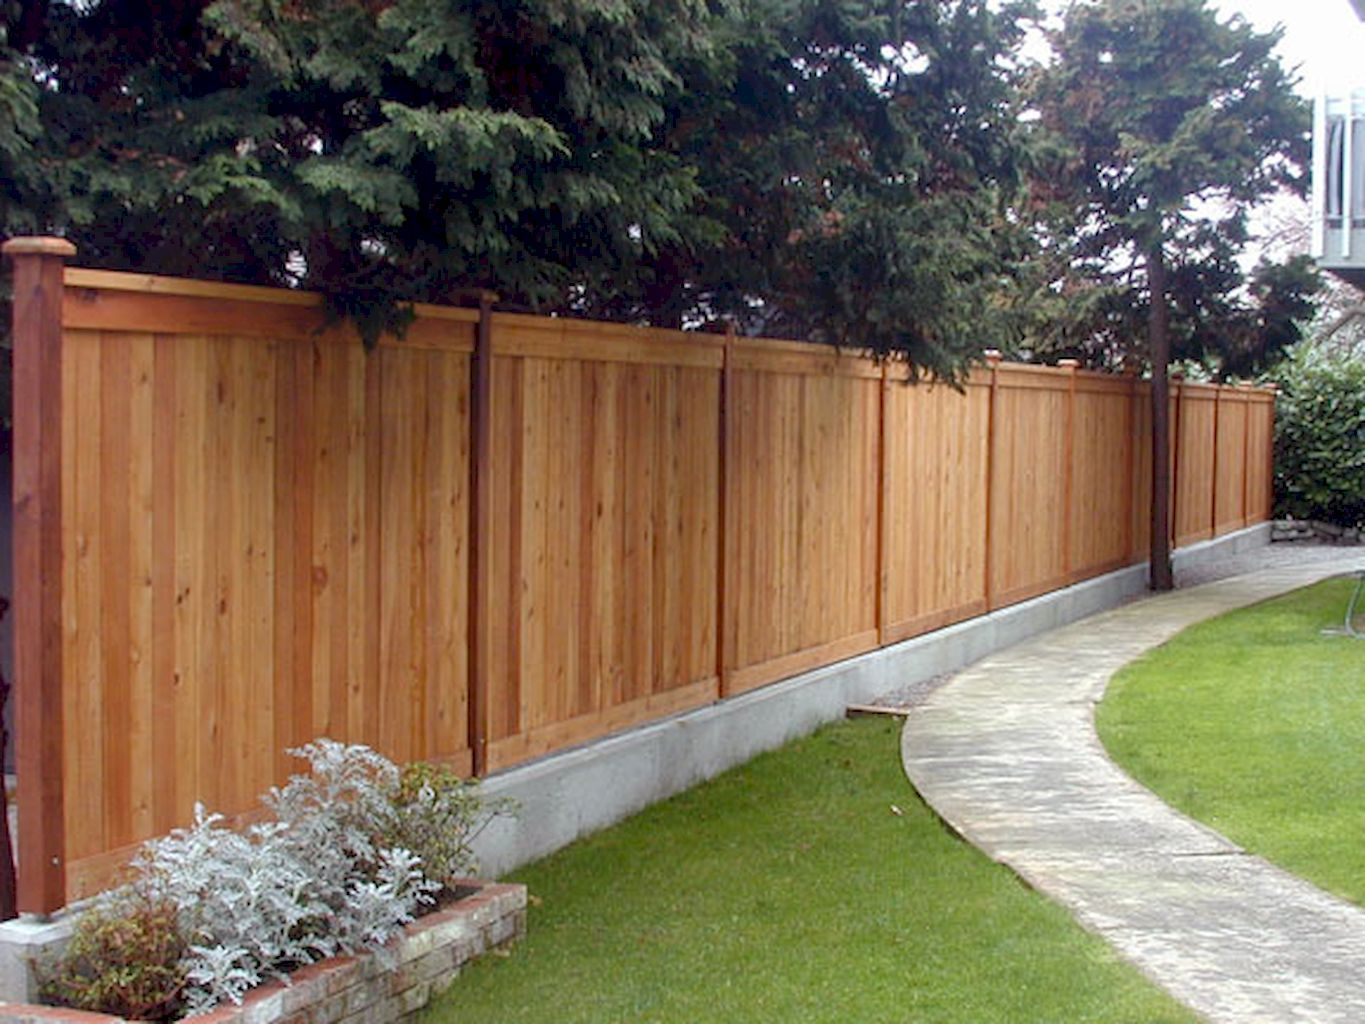 70 Wooden Privacy Fence Patio Backyard Landscaping Ideas